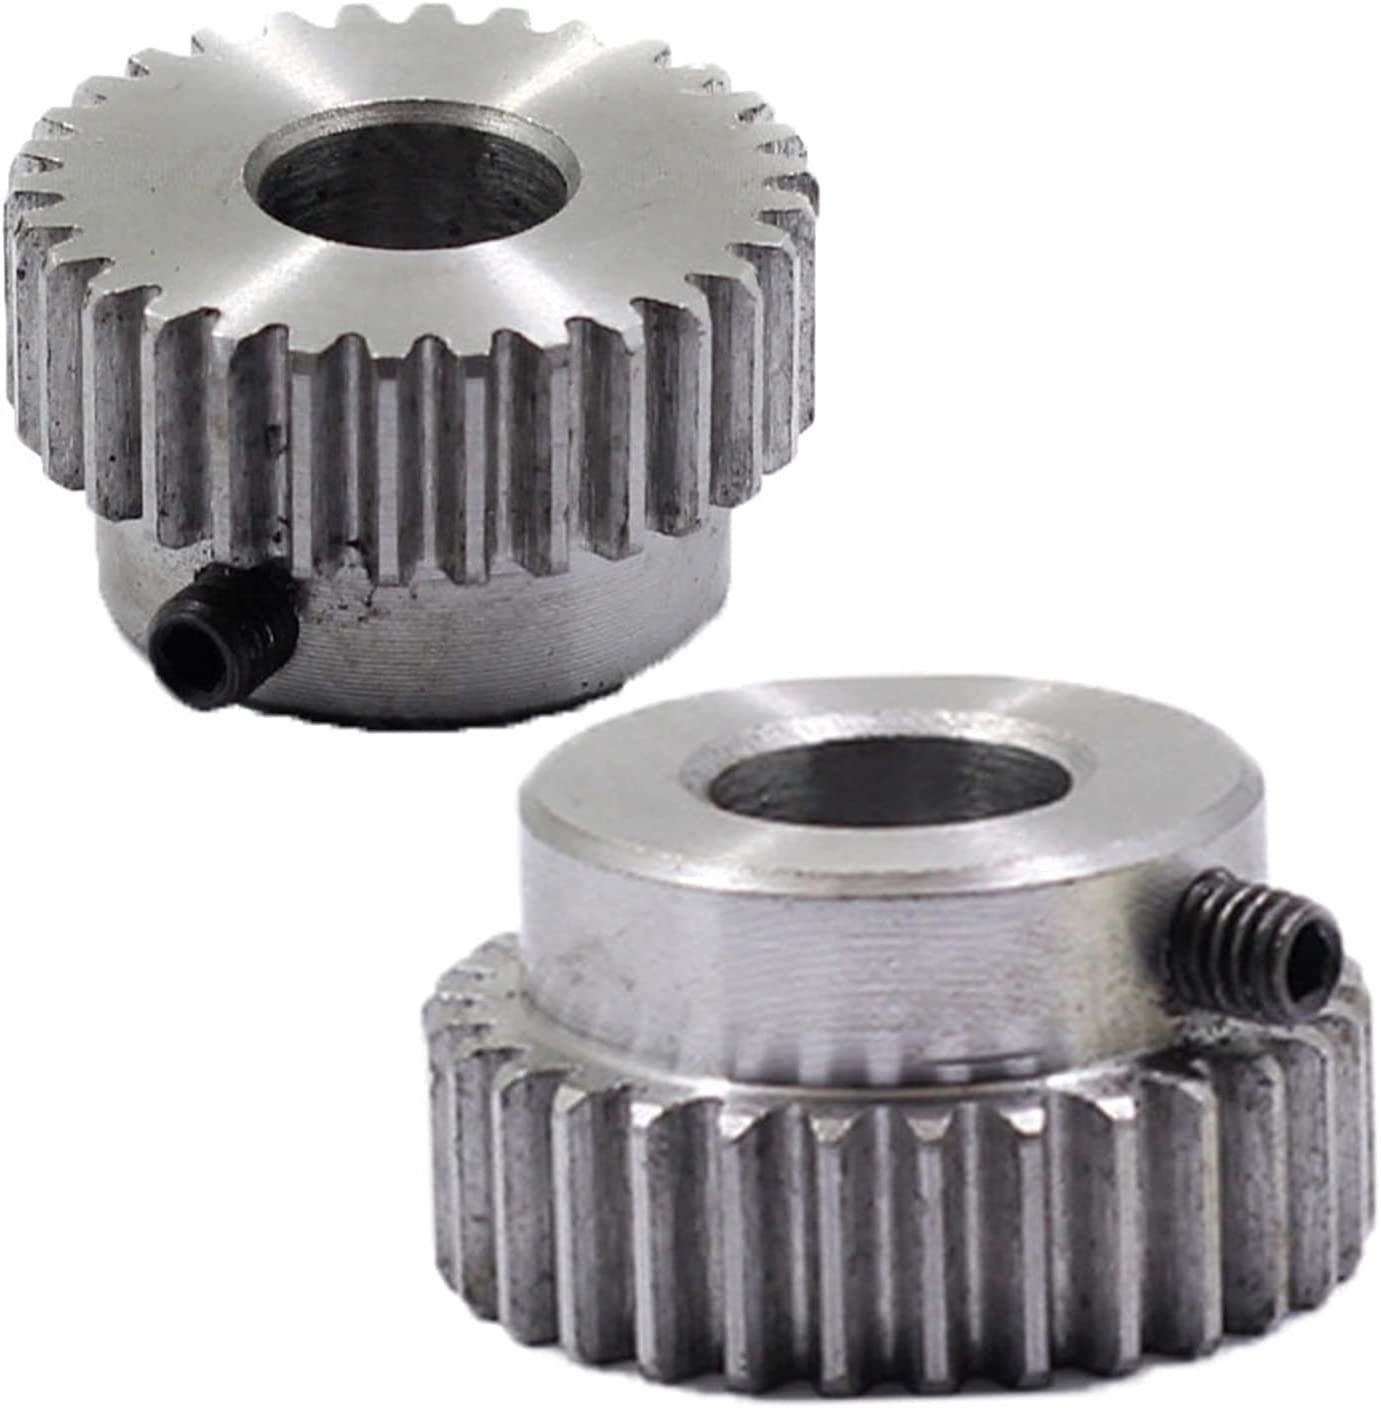 KHJK At the price of surprise CHFENG-GG NEW before selling 2Pcs 1M 27Teeth Inner Hole 12mm 6 Gear 8 10 Spur